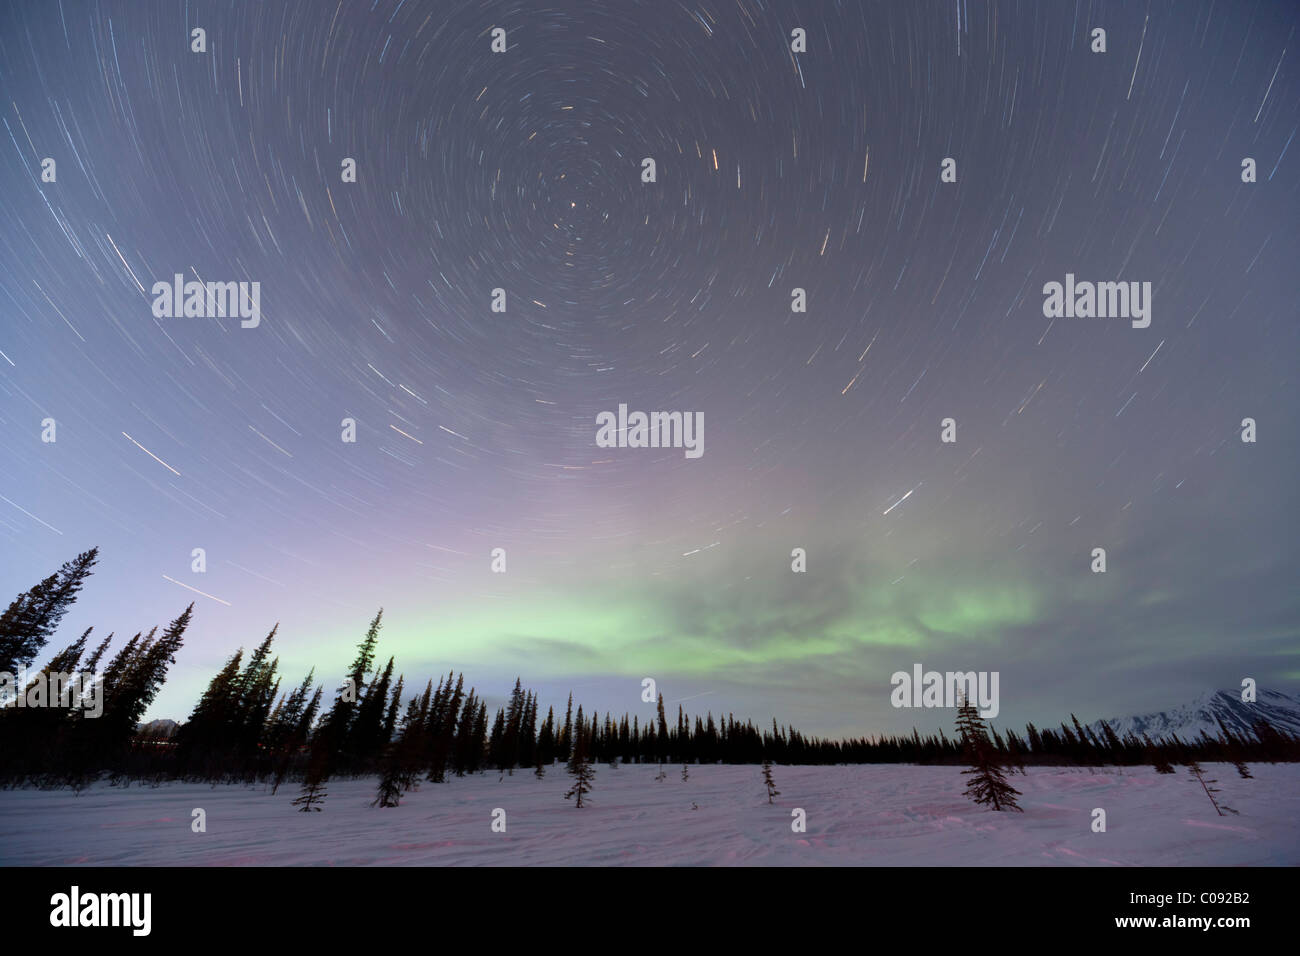 View of Northern Lights and star trails above spruce trees in Broad Pass, Southcentral Alaska, Winter - Stock Image